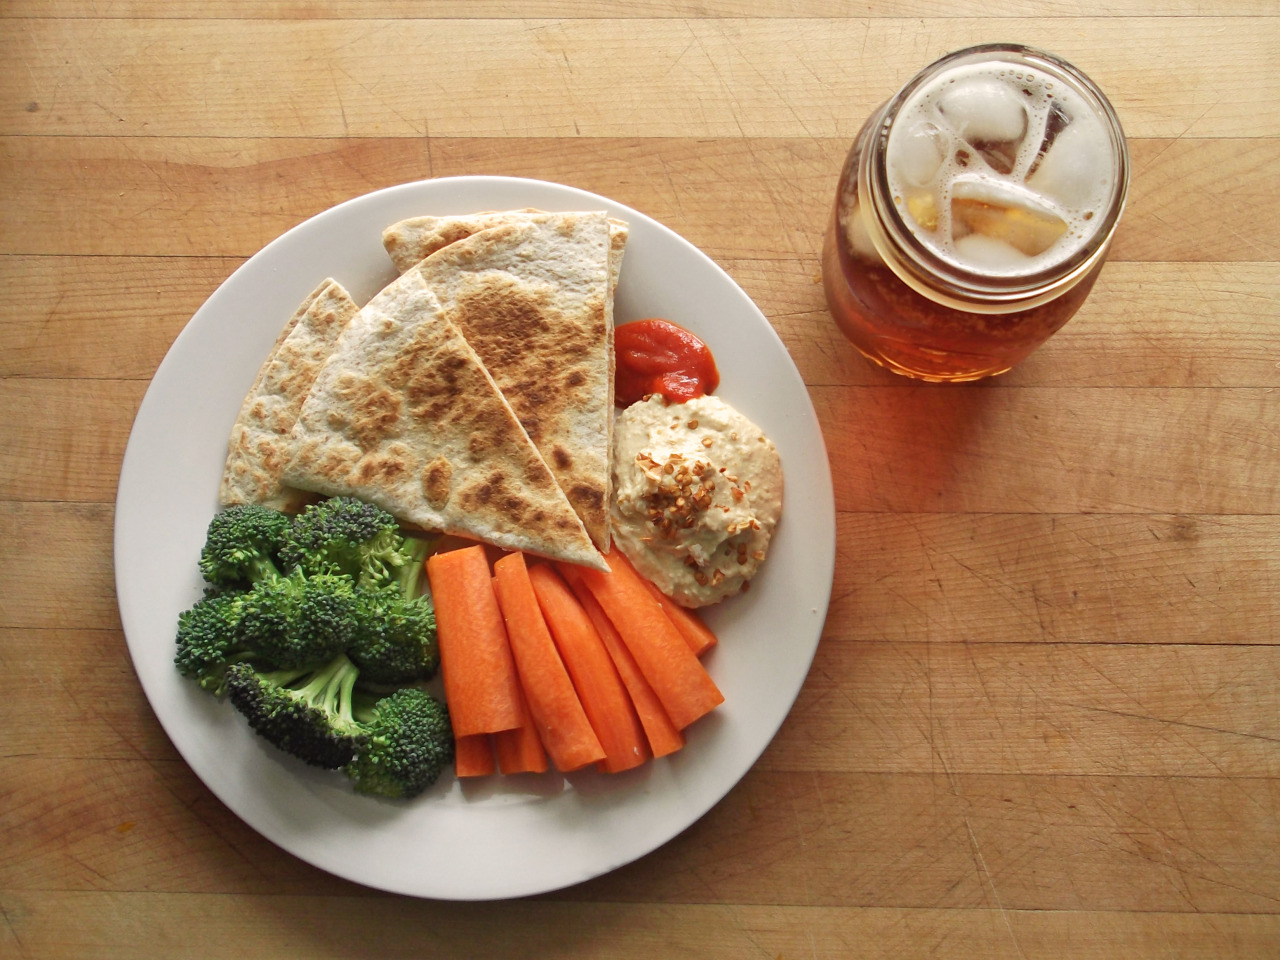 garden-of-vegan:  whole wheat pepperjack daiya quesadilla, broccoli, carrot sticks, roasted garlic hummus, and sriracha, with iced strawberry rooibos tea